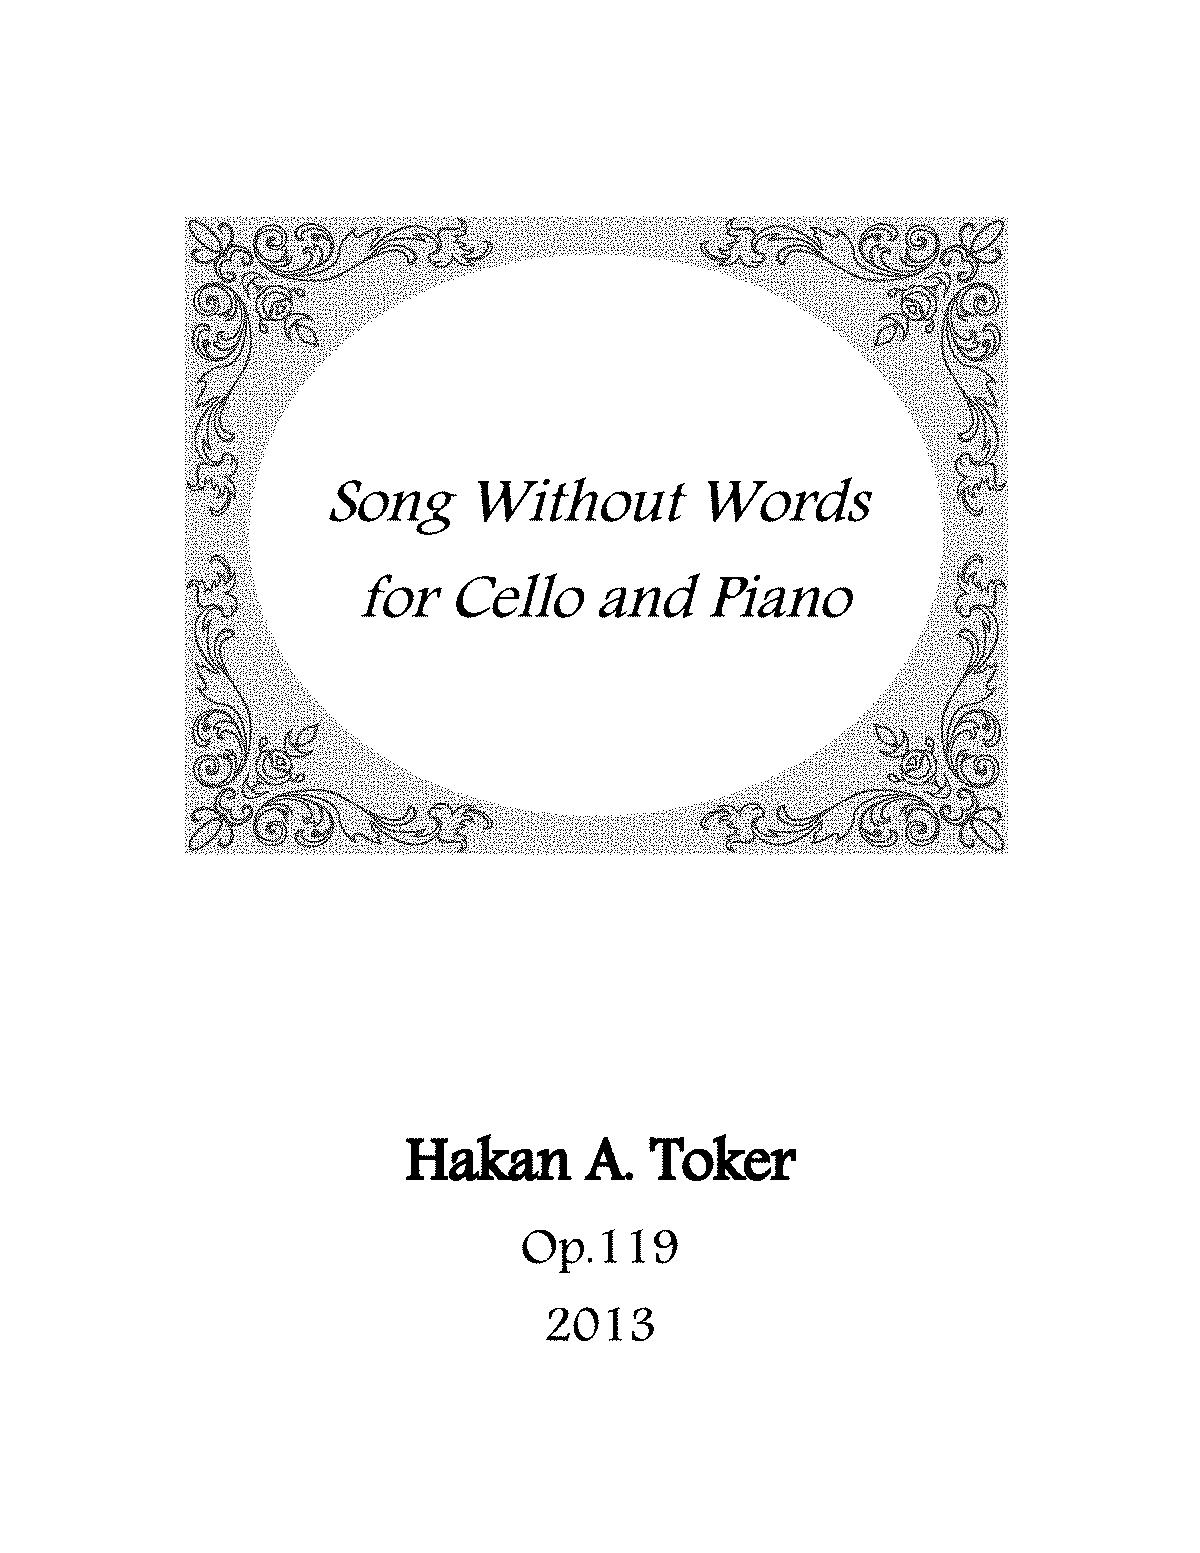 PMLP579508-Song without words by Hakan A. Toker - piano score.pdf